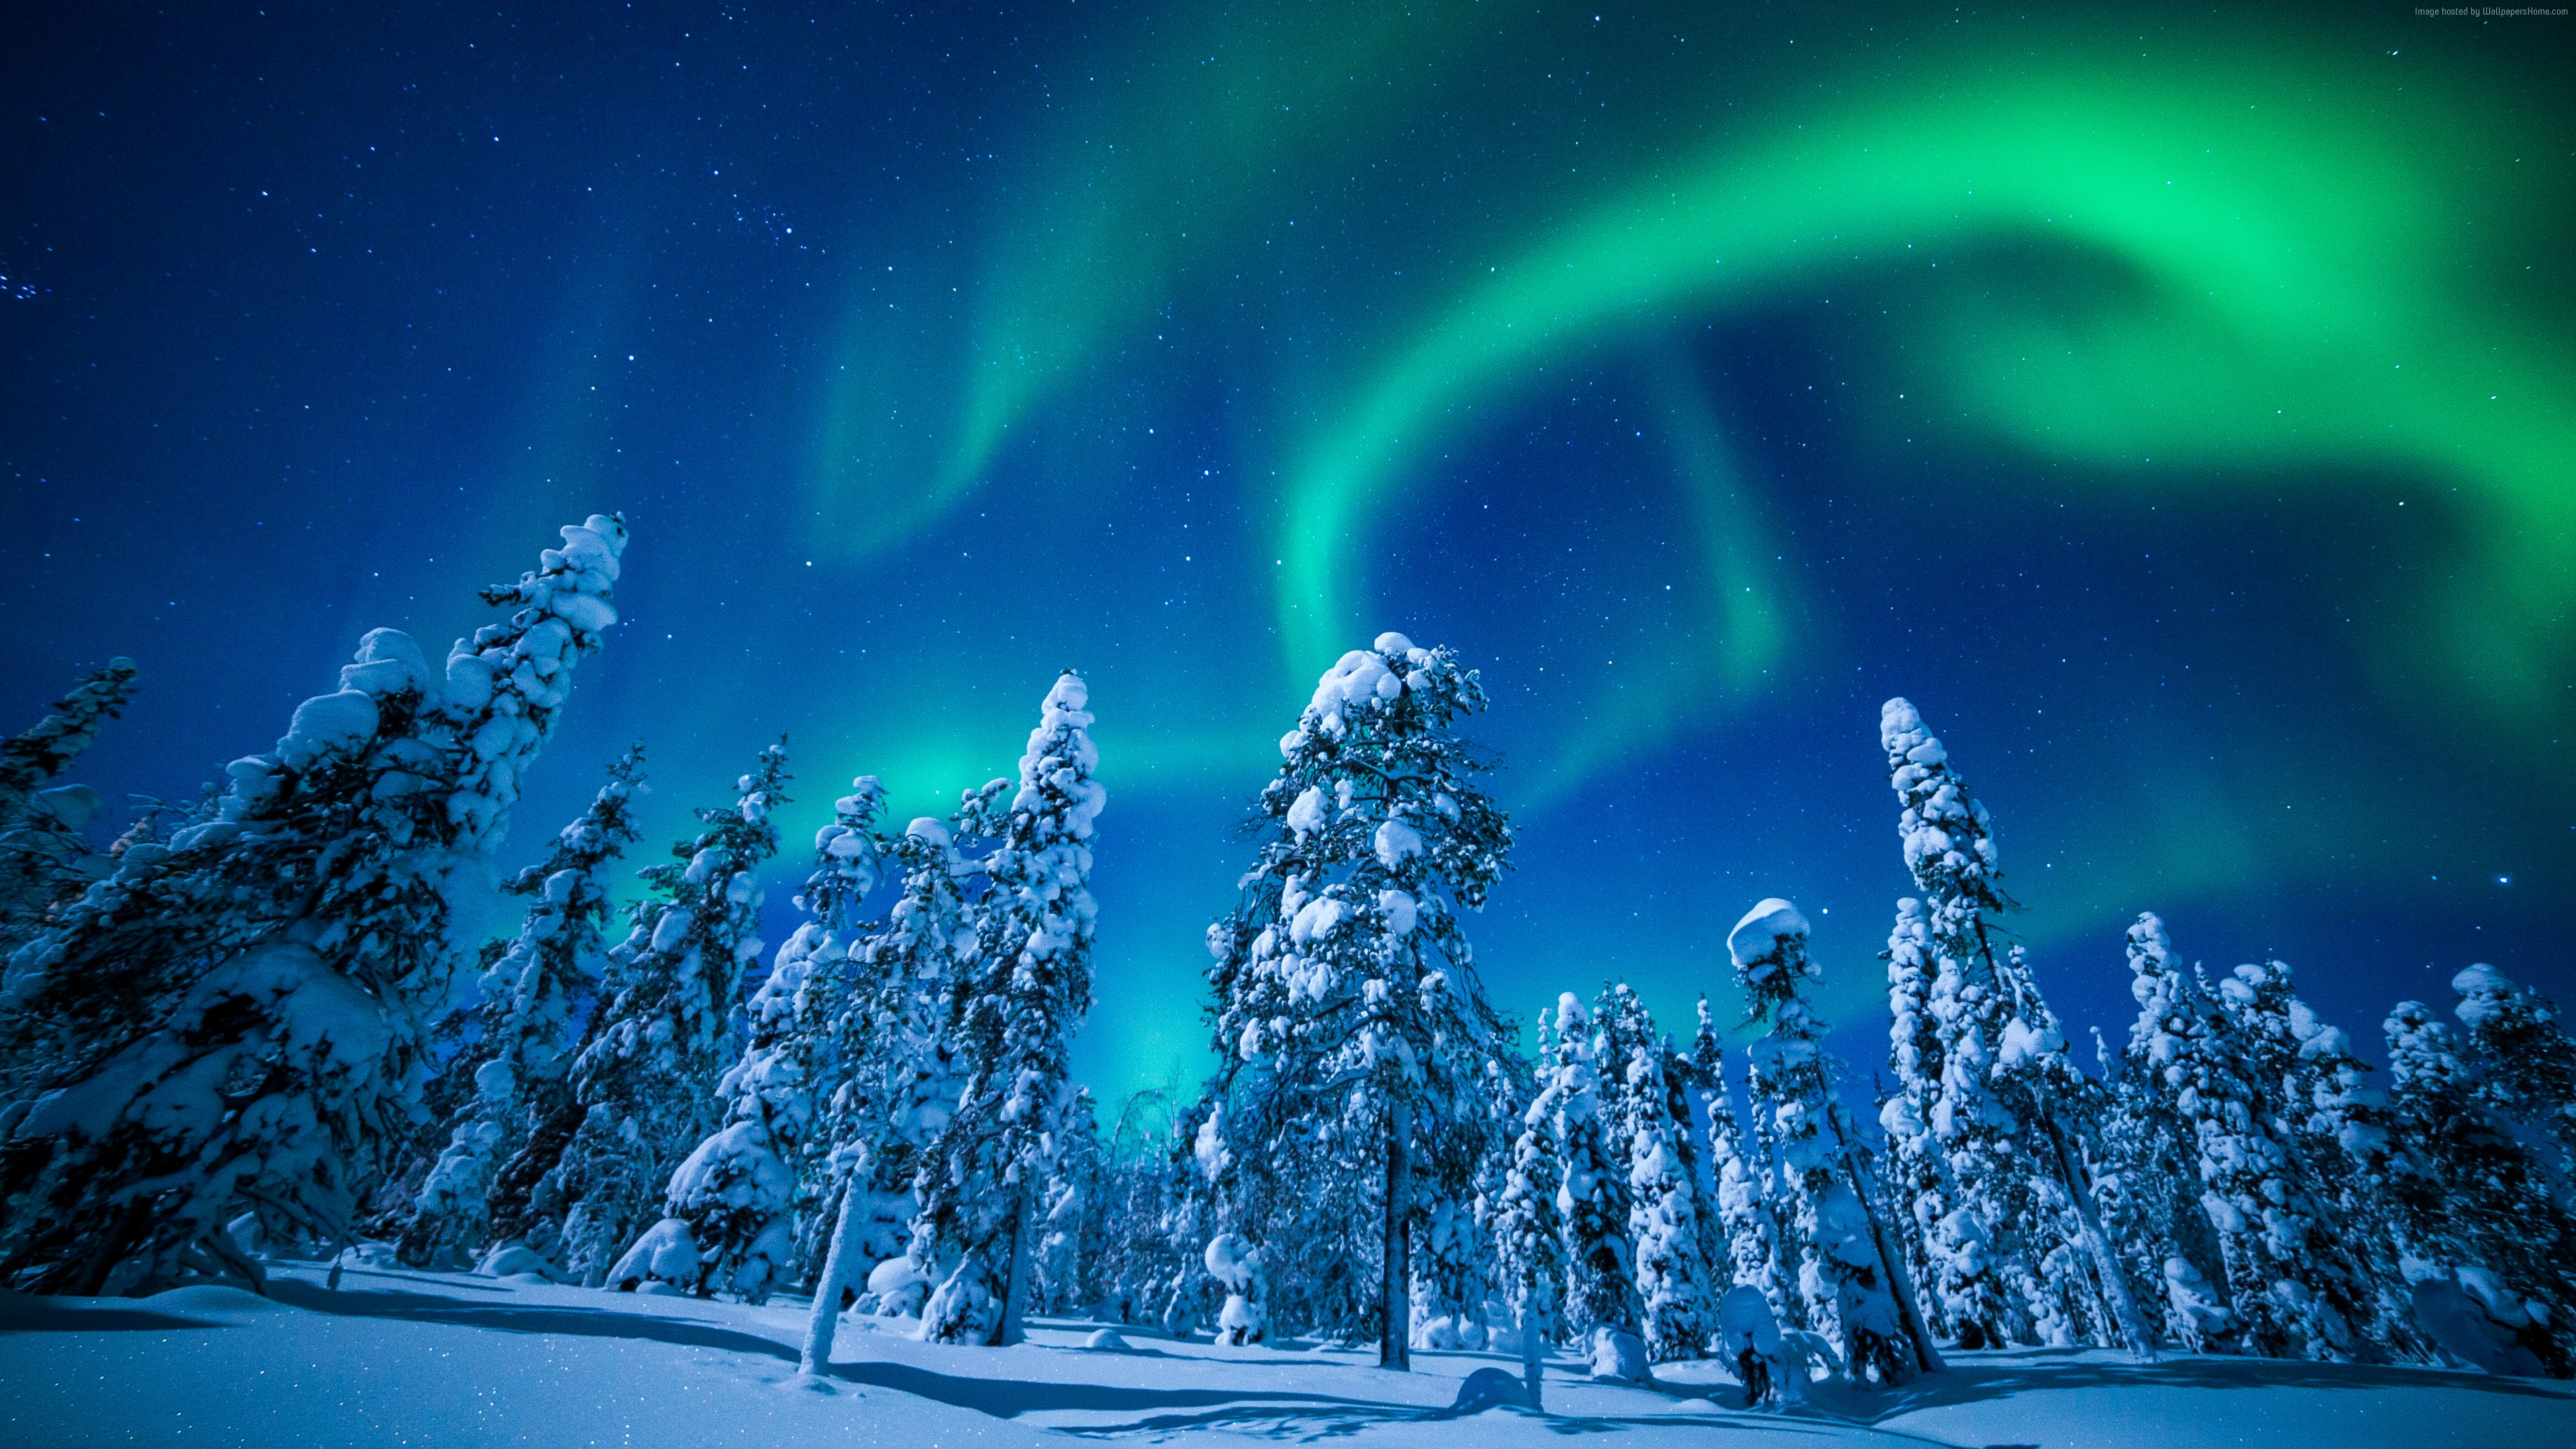 Wallpaper Lapland, Finland, winter, snow, tree, night, northern lights, 5k, Travel